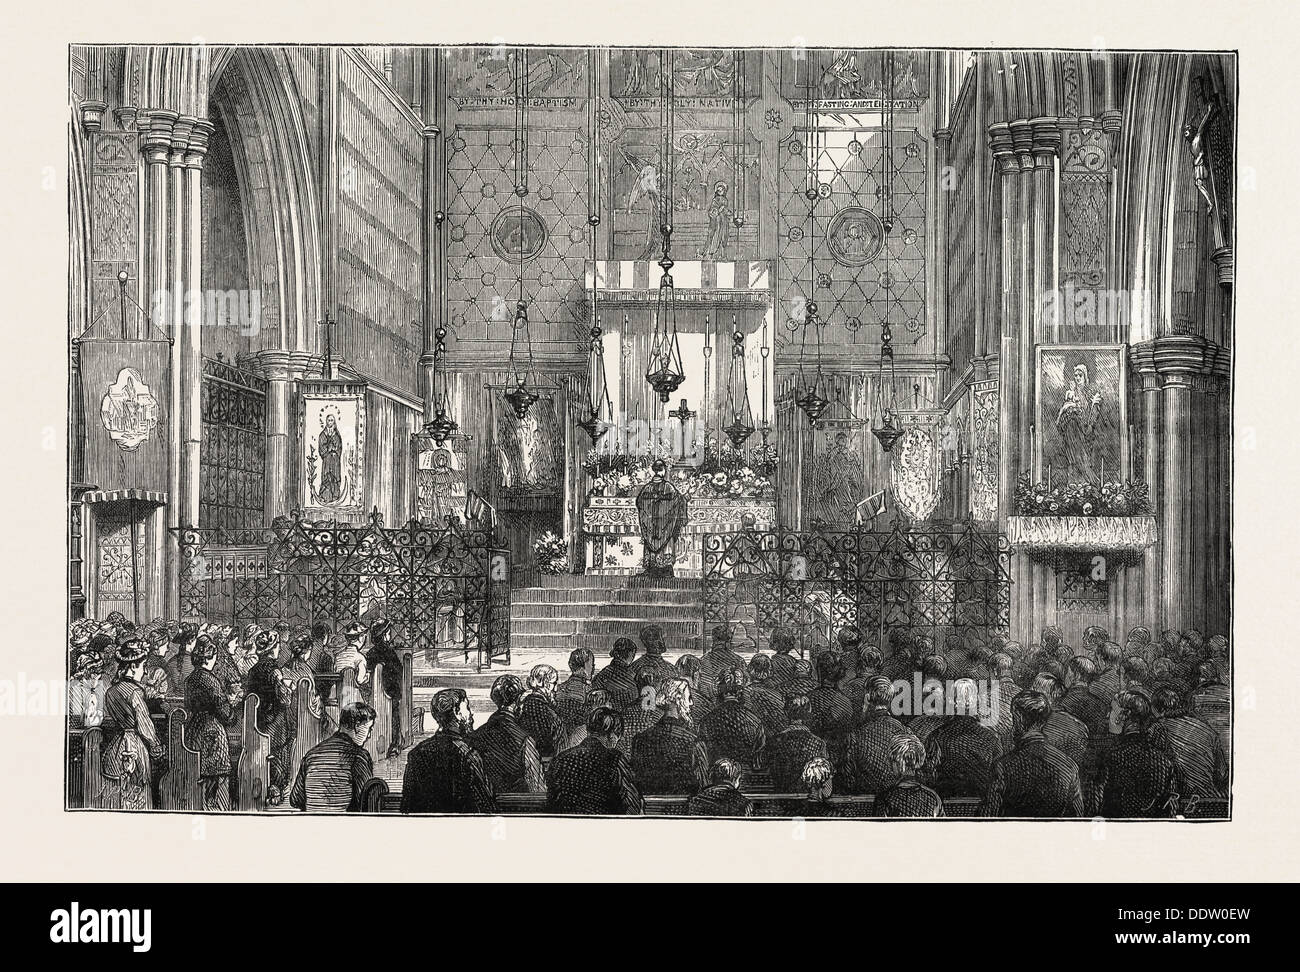 EASTERTIDE IN THE CHURCH OF ST. ALBANS, HOLBORN, LONDON, UK Stock Photo